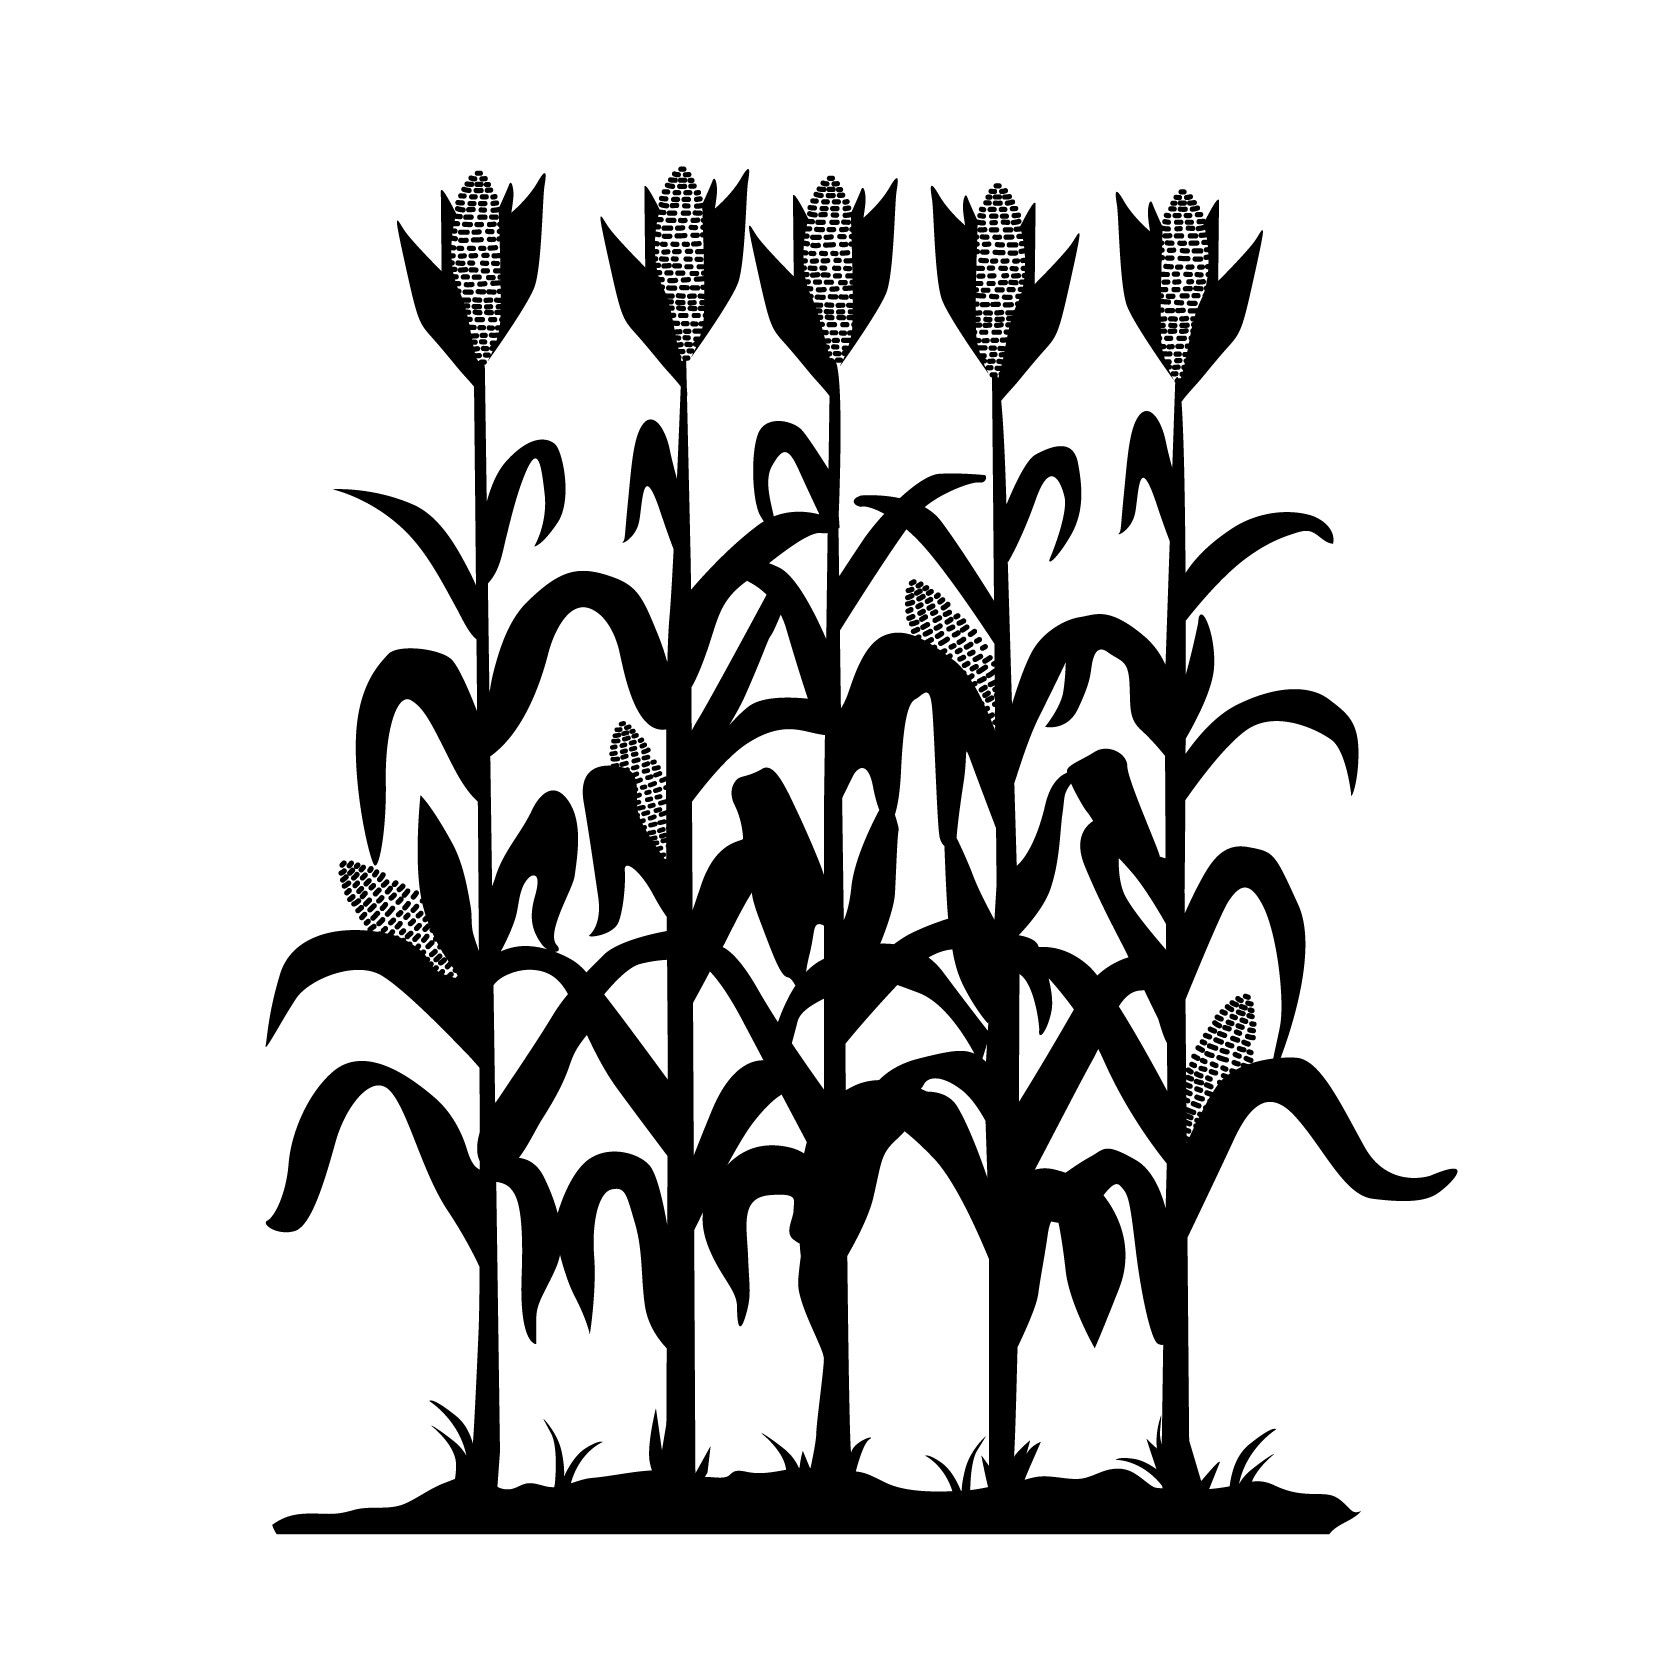 corn stalks illustration - Google Search | drama ...